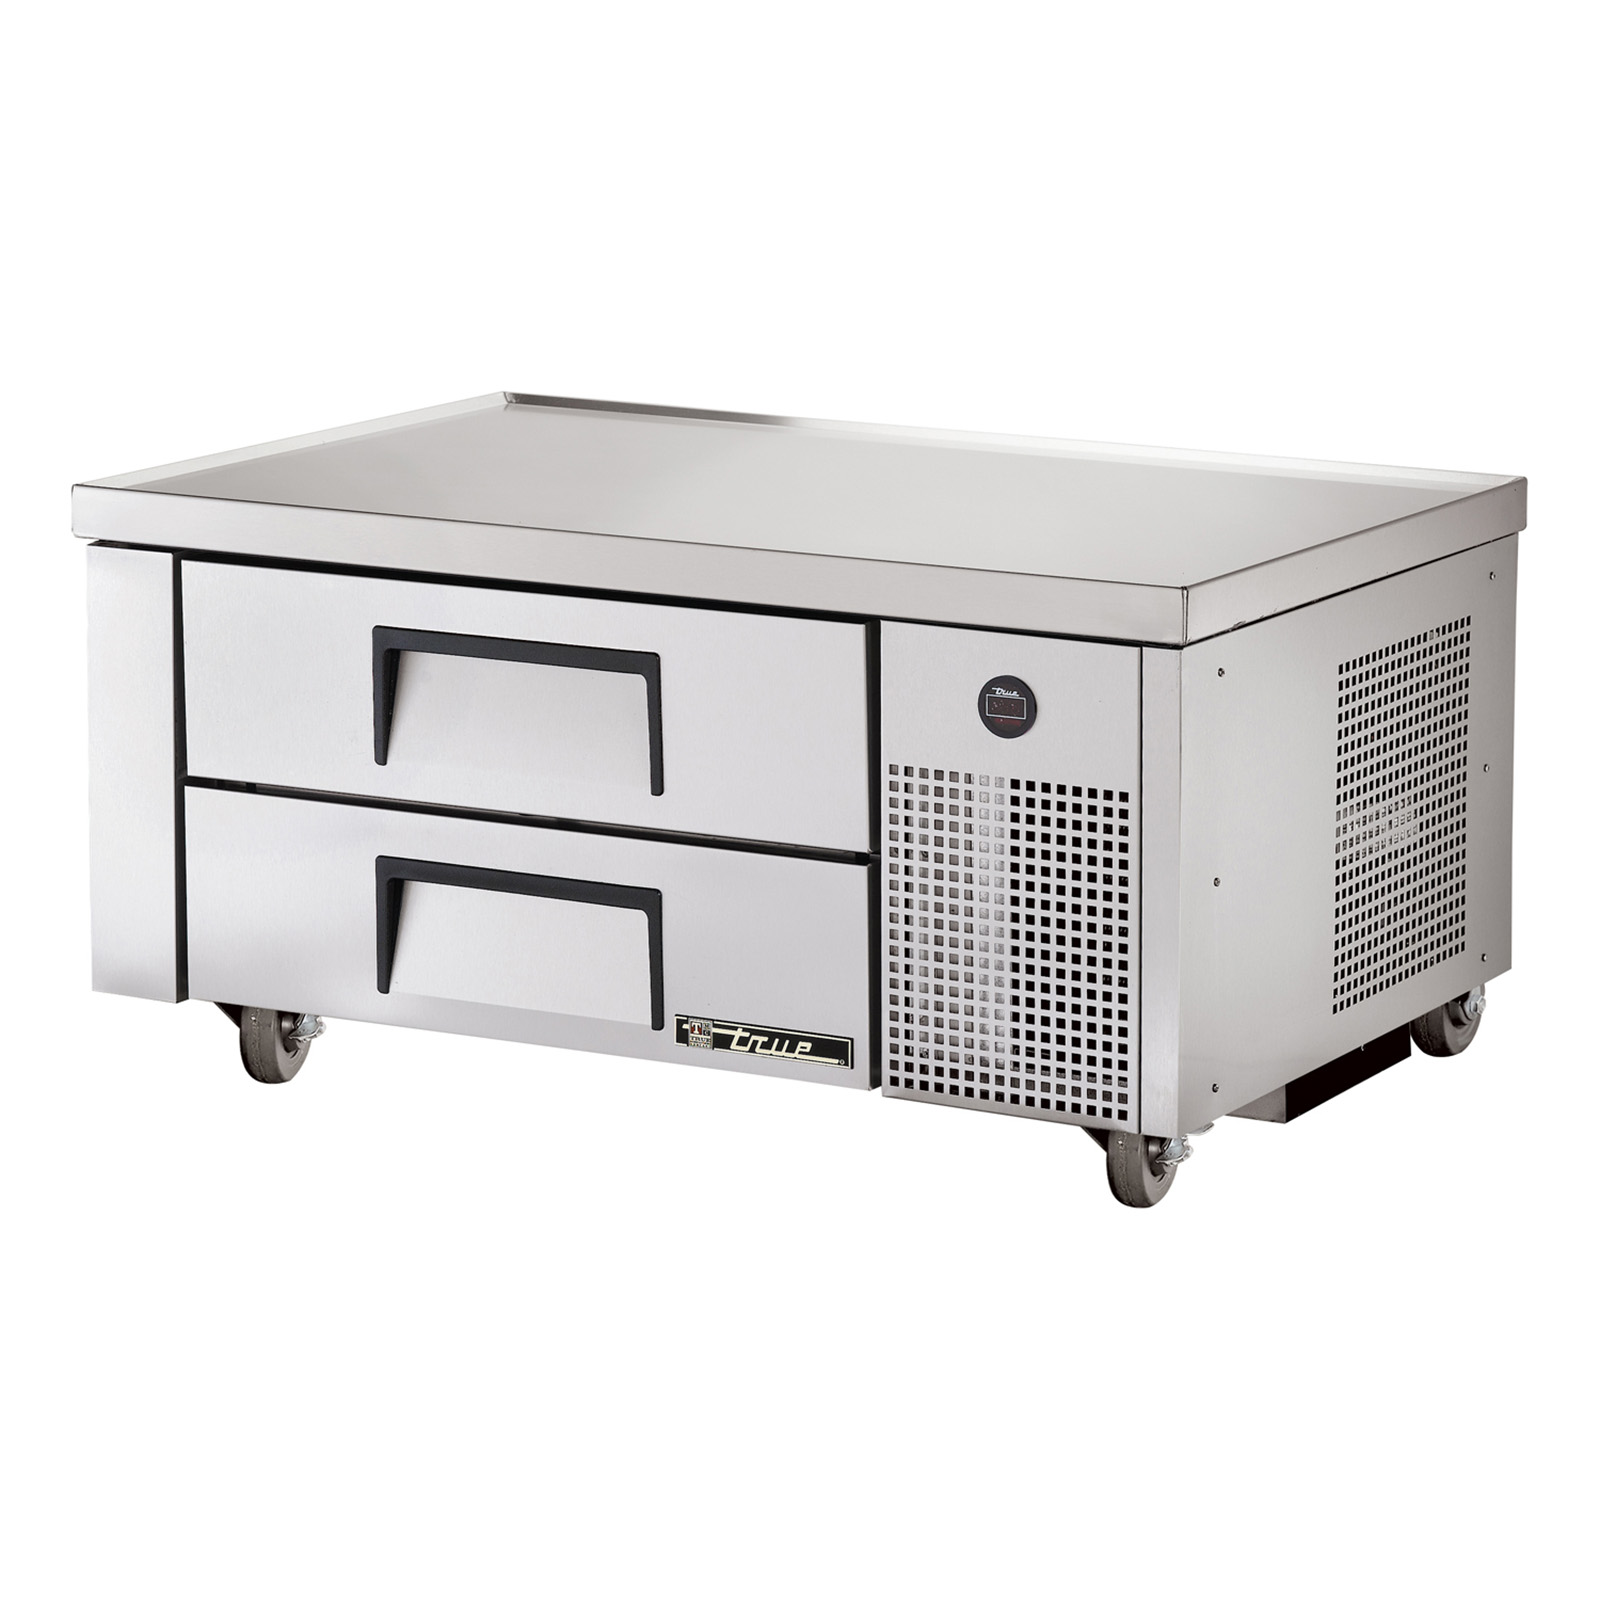 TRCB-48 True - Refrigerated Chef Base 48-3/8